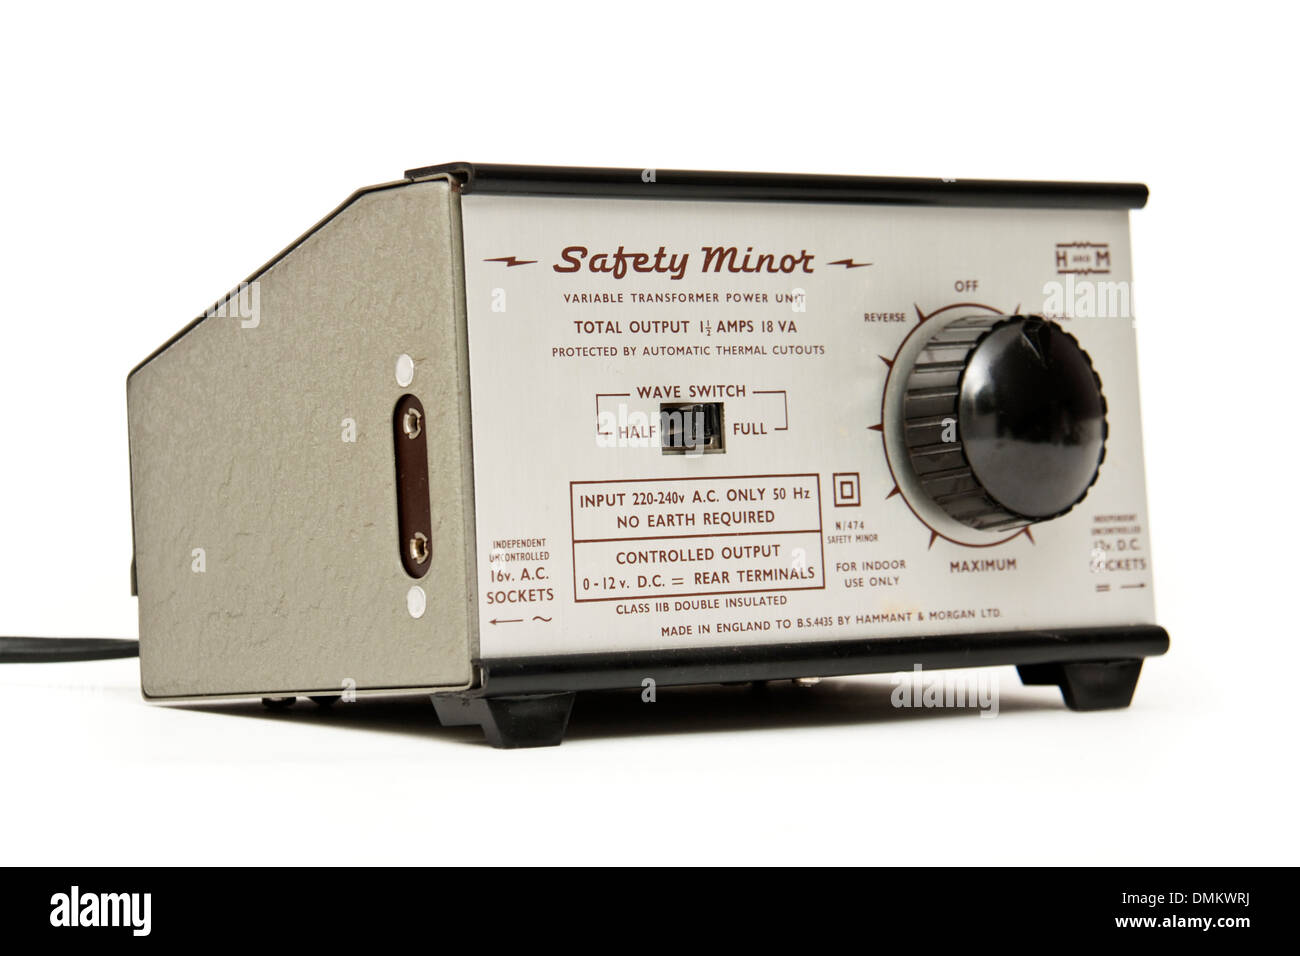 Vintage 'Safety Minor' model railway controller by Hammant & Morgan Ltd (Hamden Works, Watford, England) - Stock Image